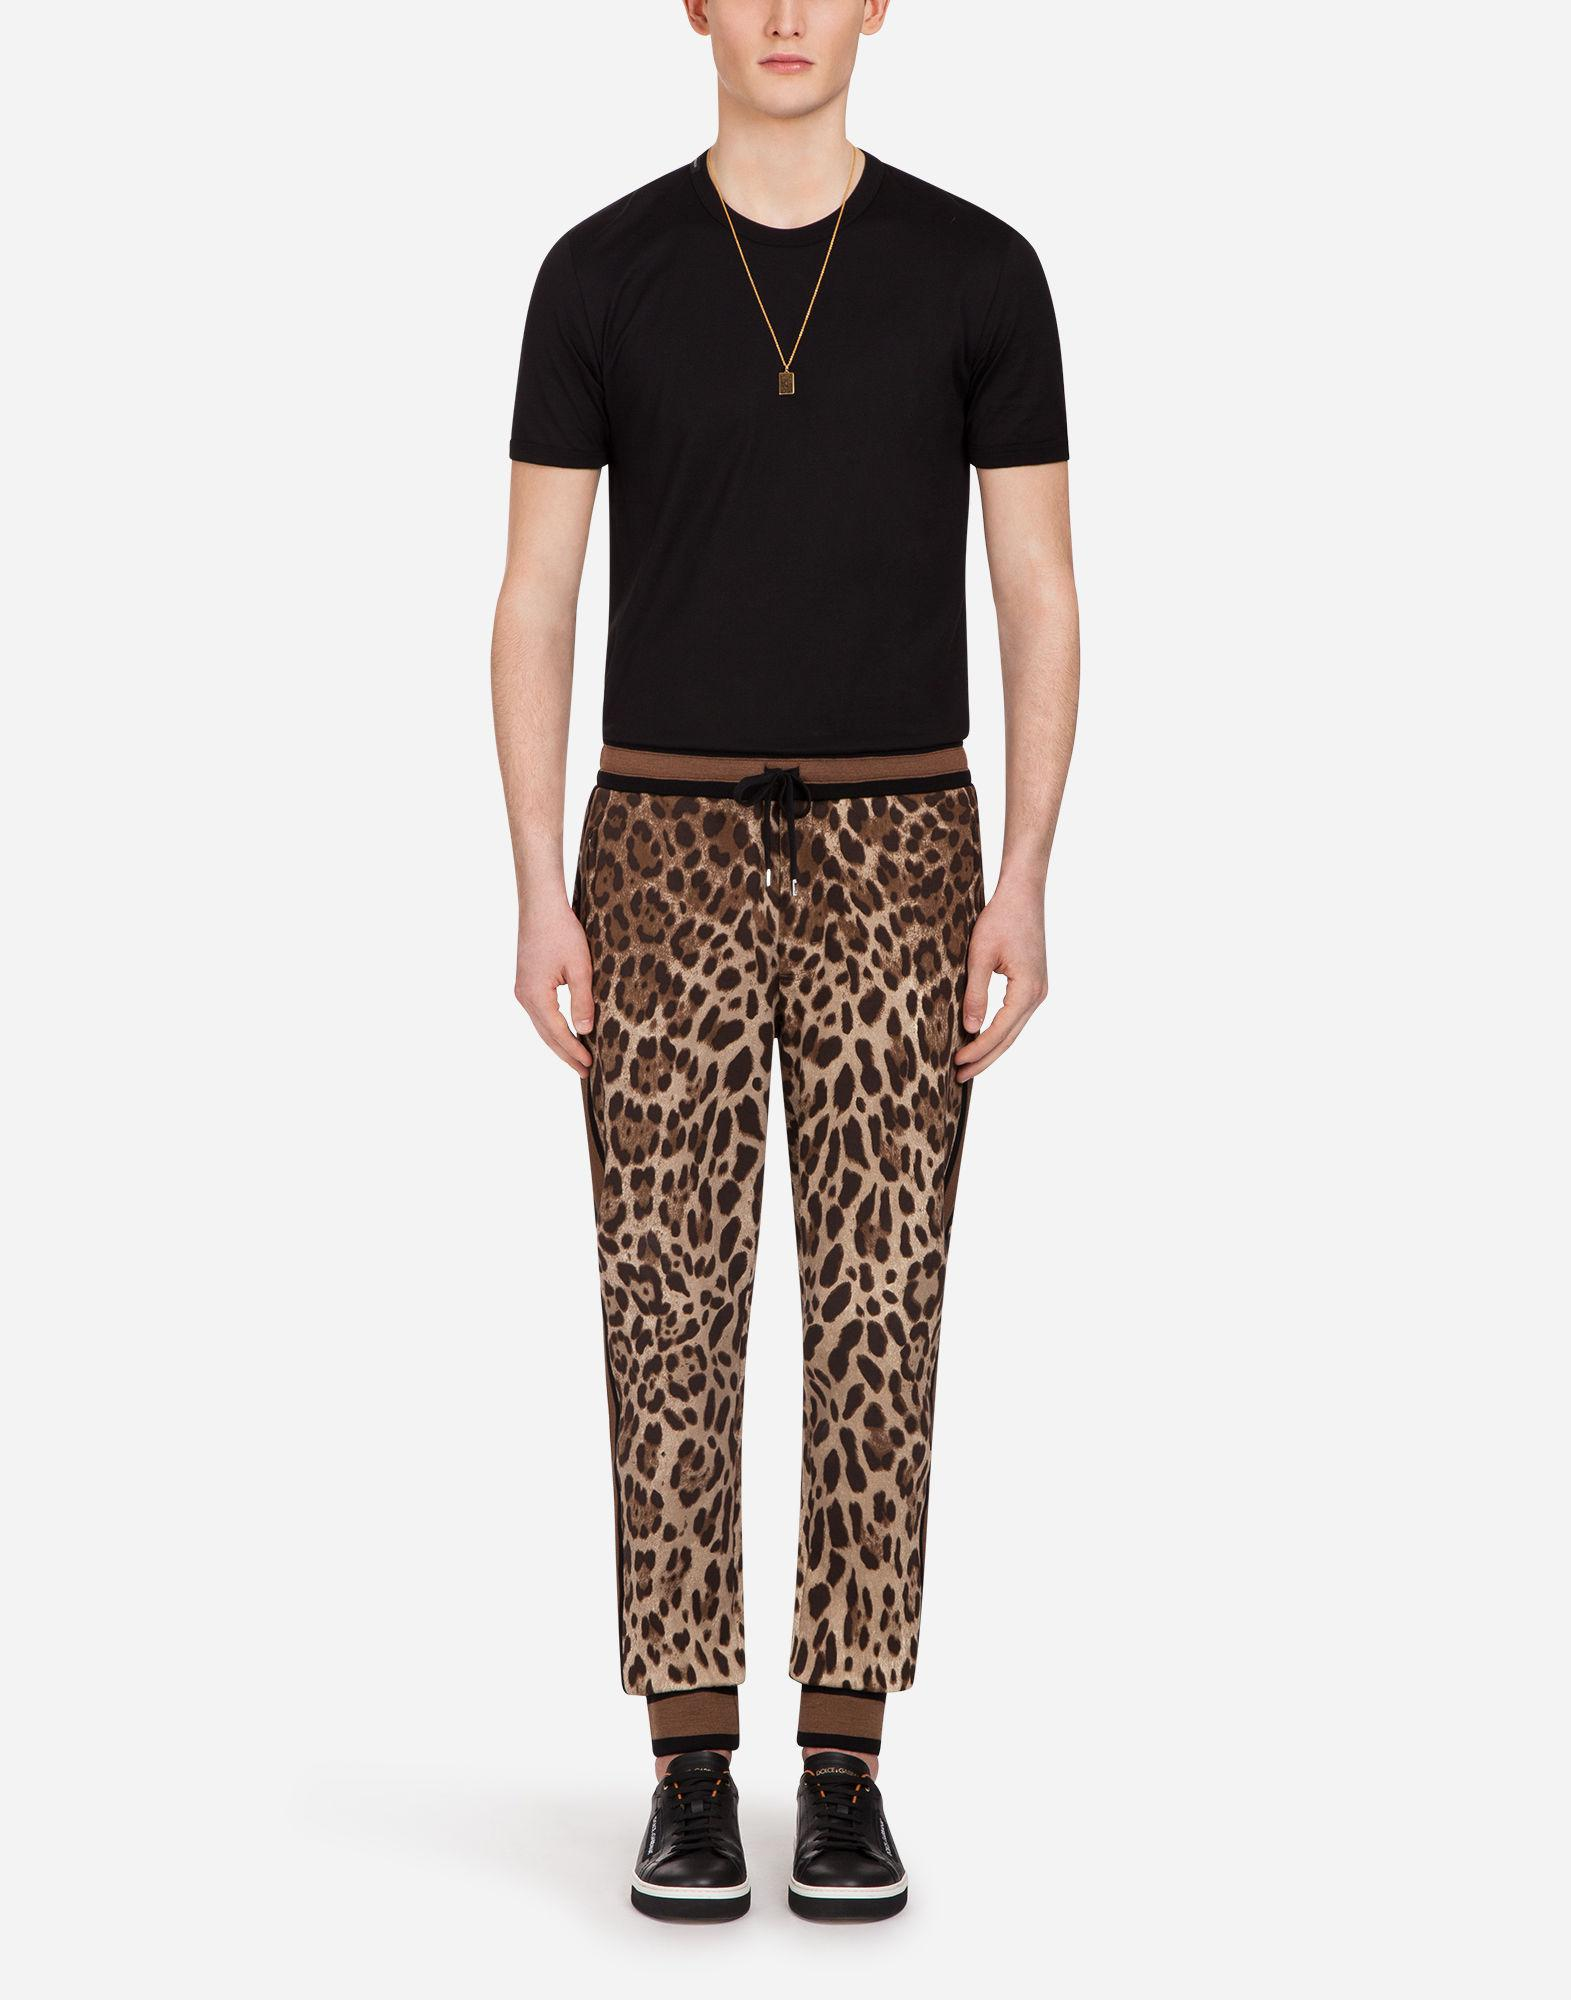 Dolce & Gabbana Cotton Jogging Pants In Printed Jersey for Men